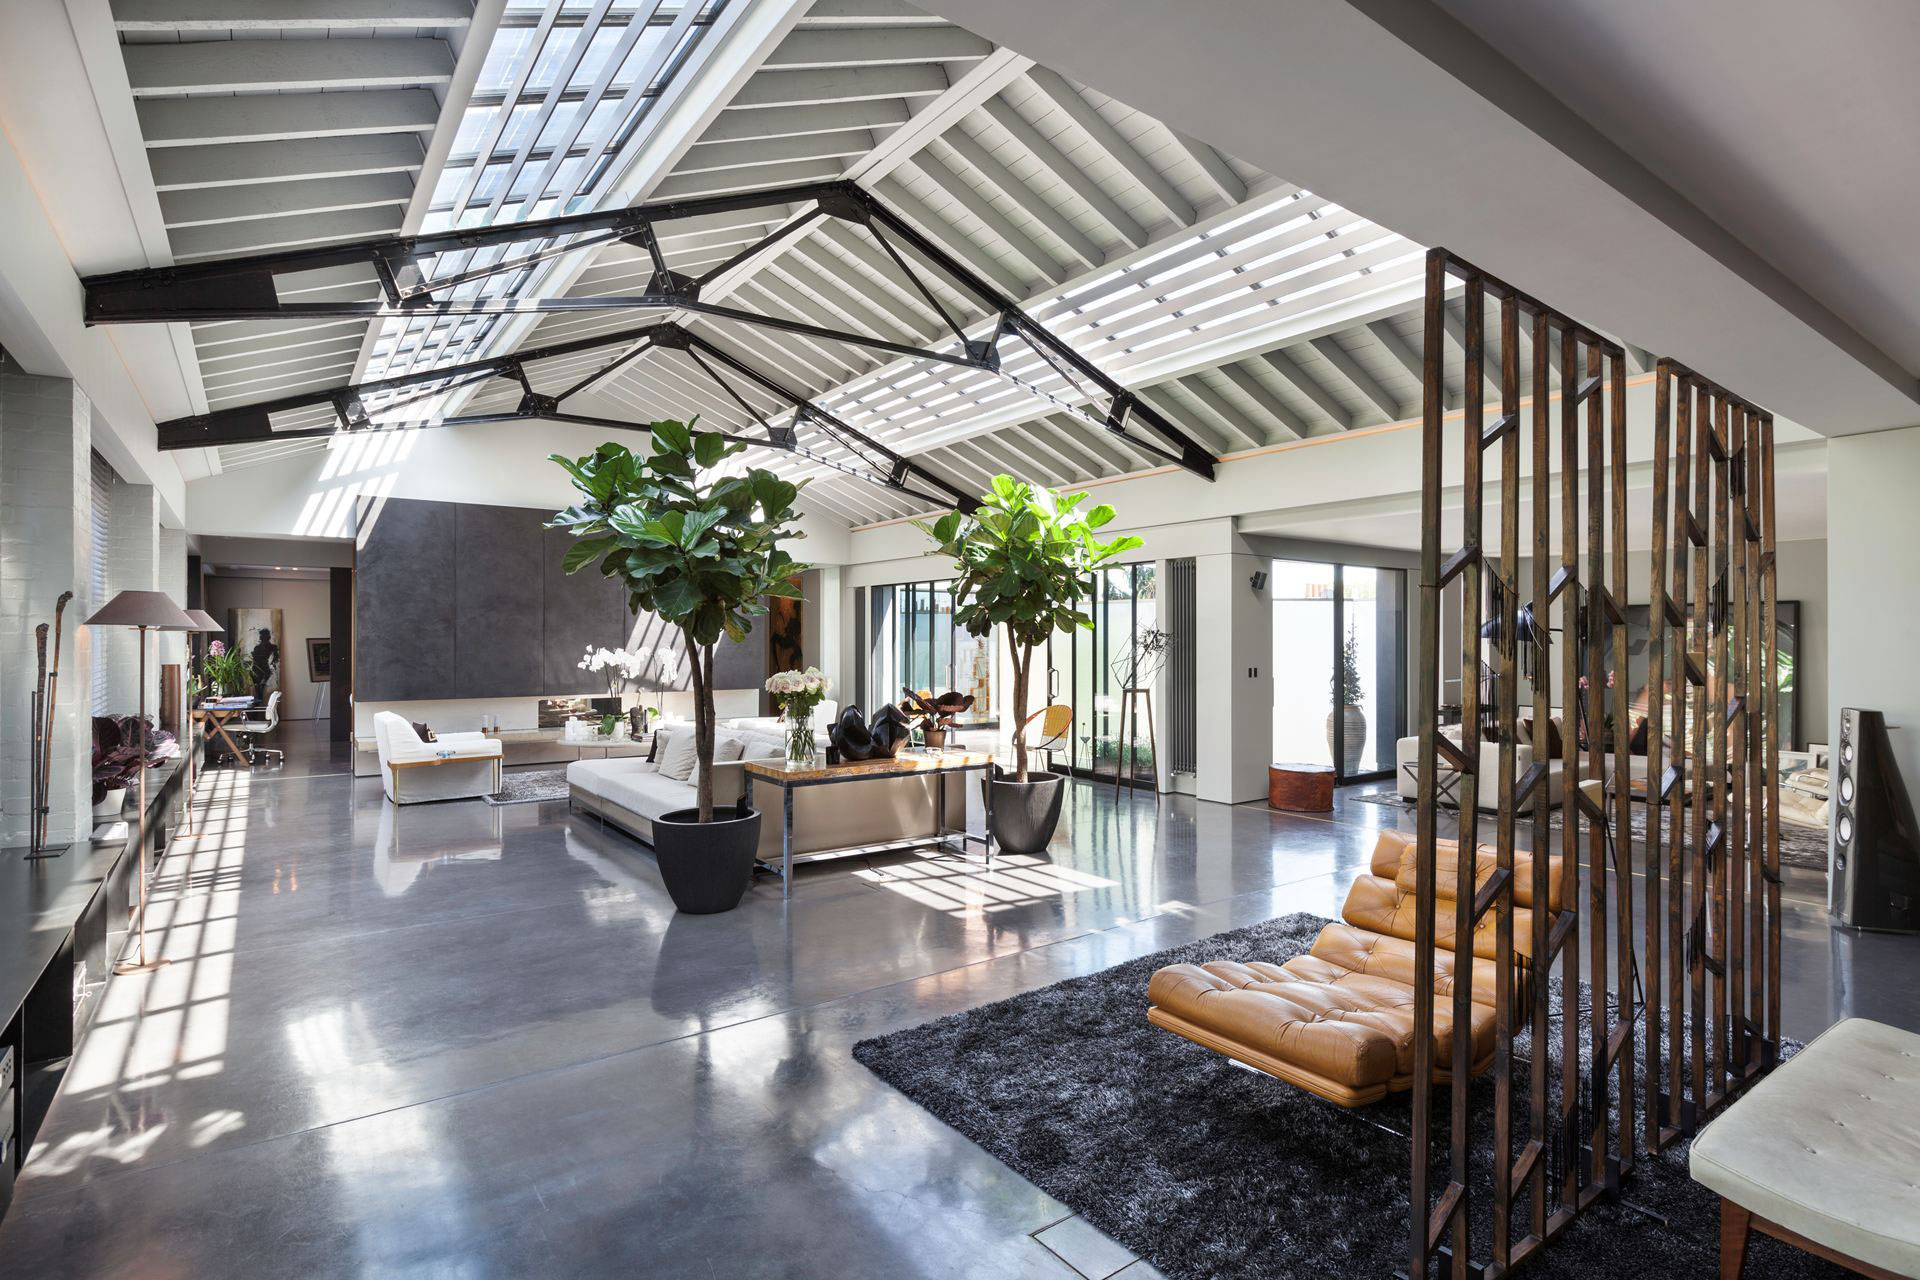 The Talisman Building Conversion Of A Warehouse Into A